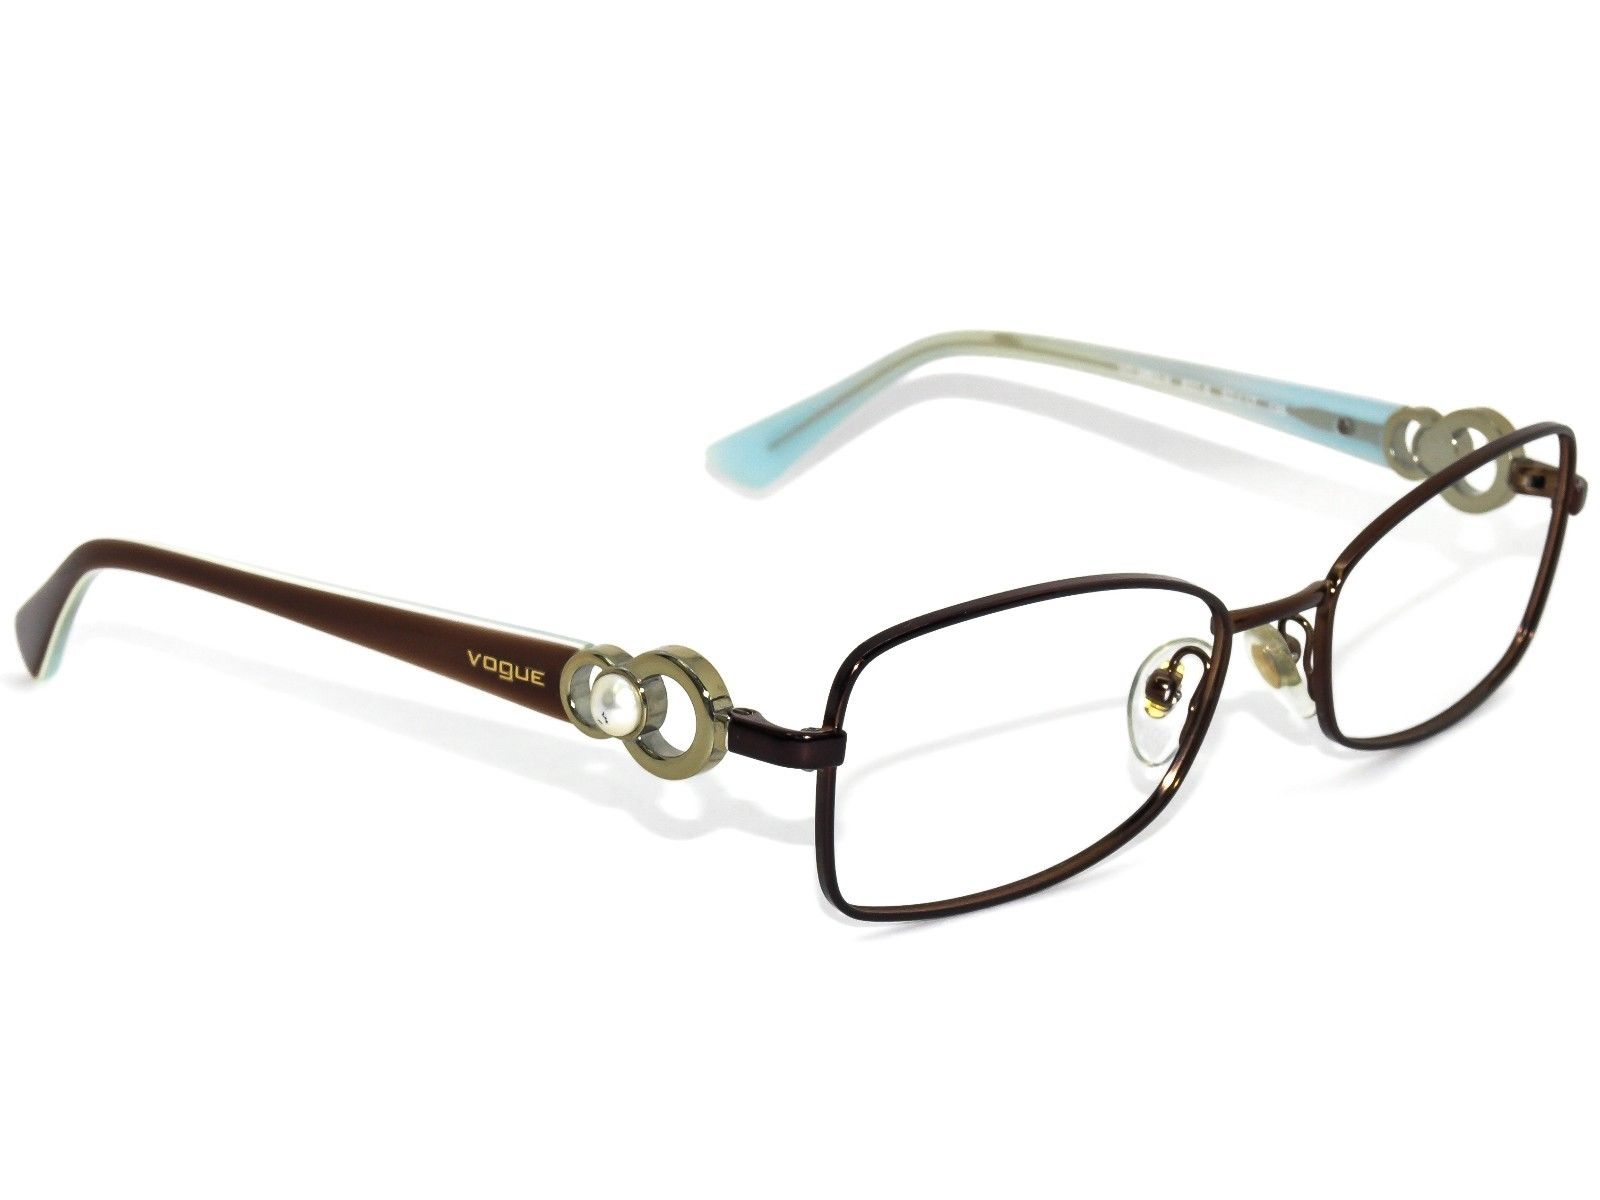 Vogue VO 3863-H 837-S Eyeglasses